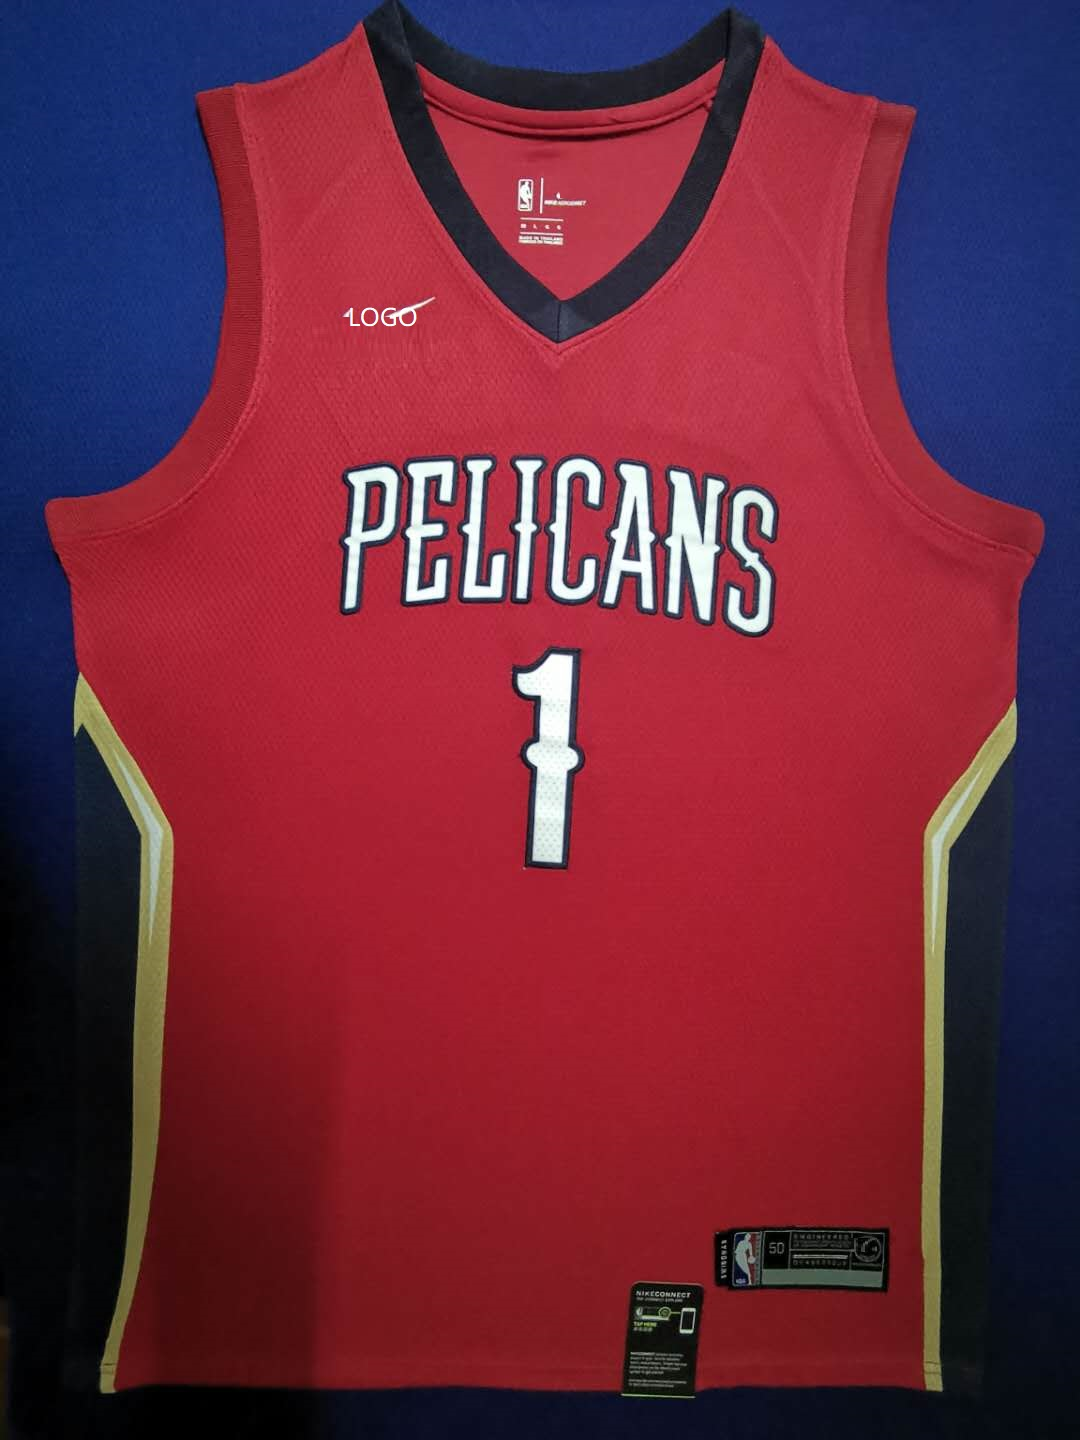 2019/20 Adult New Orleans Pelicans willamson 1 red basketball jersey